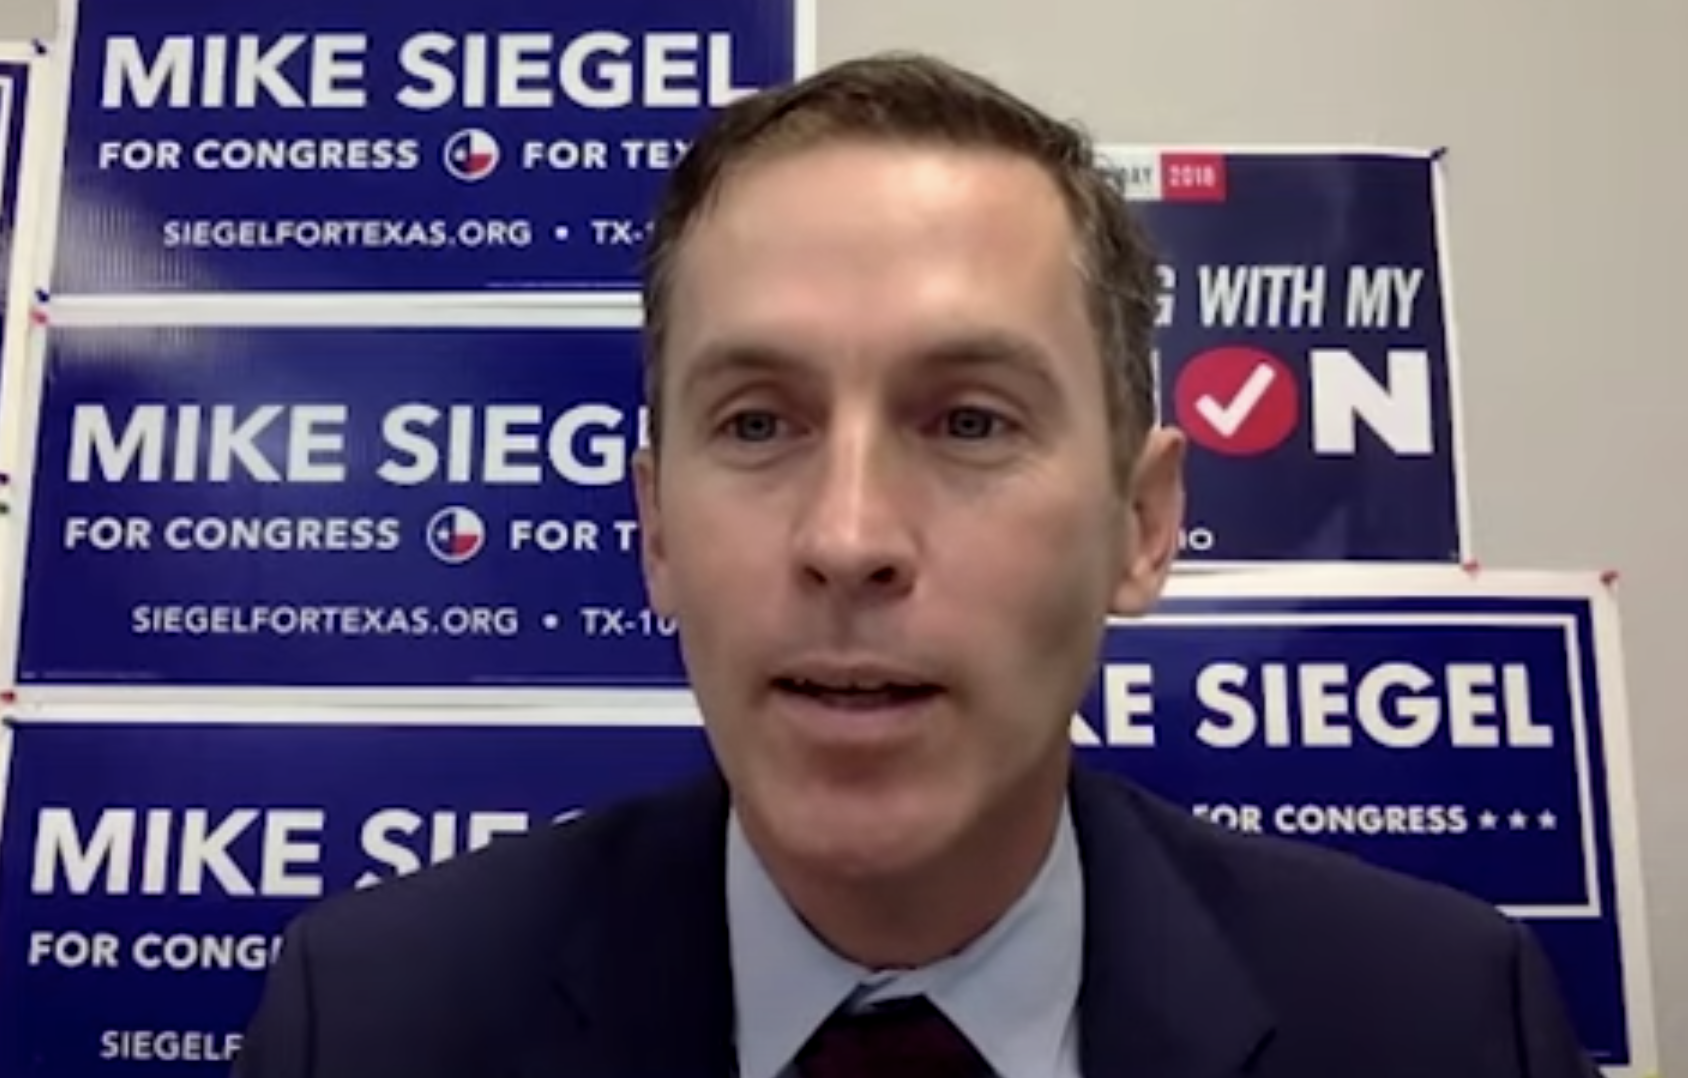 """Mike Siegel Campaigning to join AOC's """"Squad,"""" Chooses Radicalism over Results"""